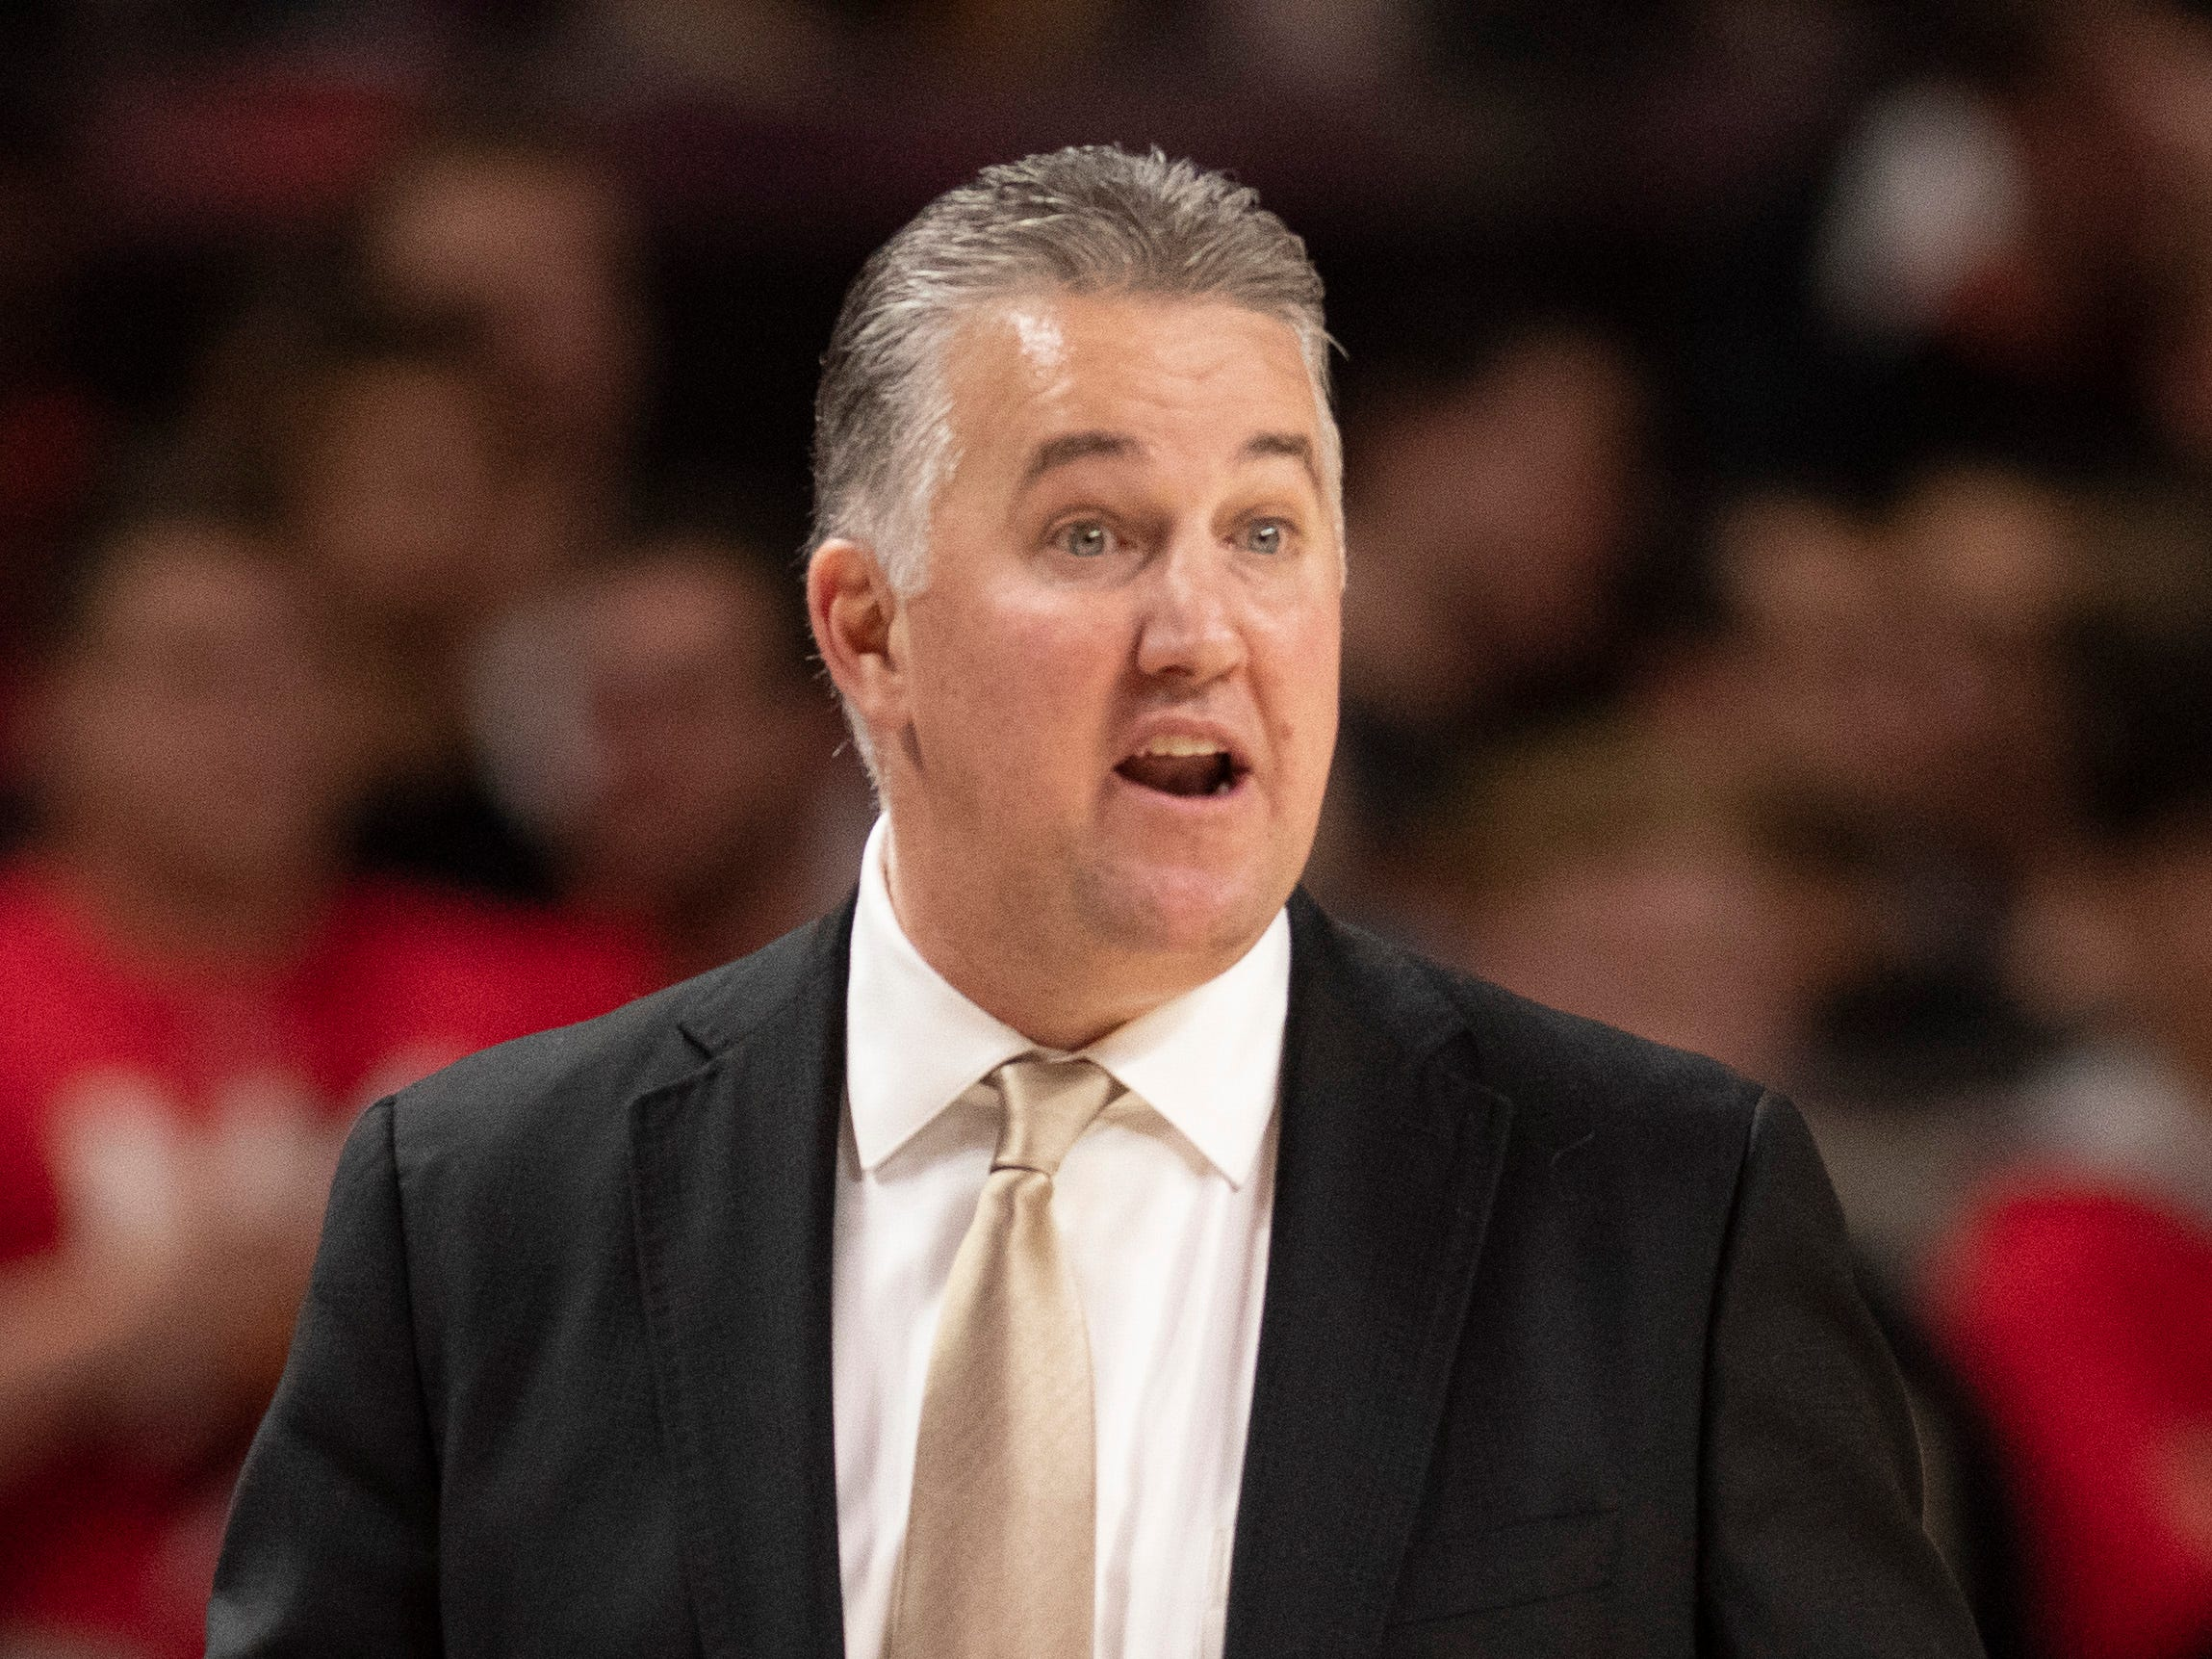 Feb 12, 2019; College Park, MD, USA; Purdue Boilermakers head coach Matt Painter reacts to play pin the court during the second half against the Maryland Terrapins at XFINITY Center. Mandatory Credit: Tommy Gilligan-USA TODAY Sports